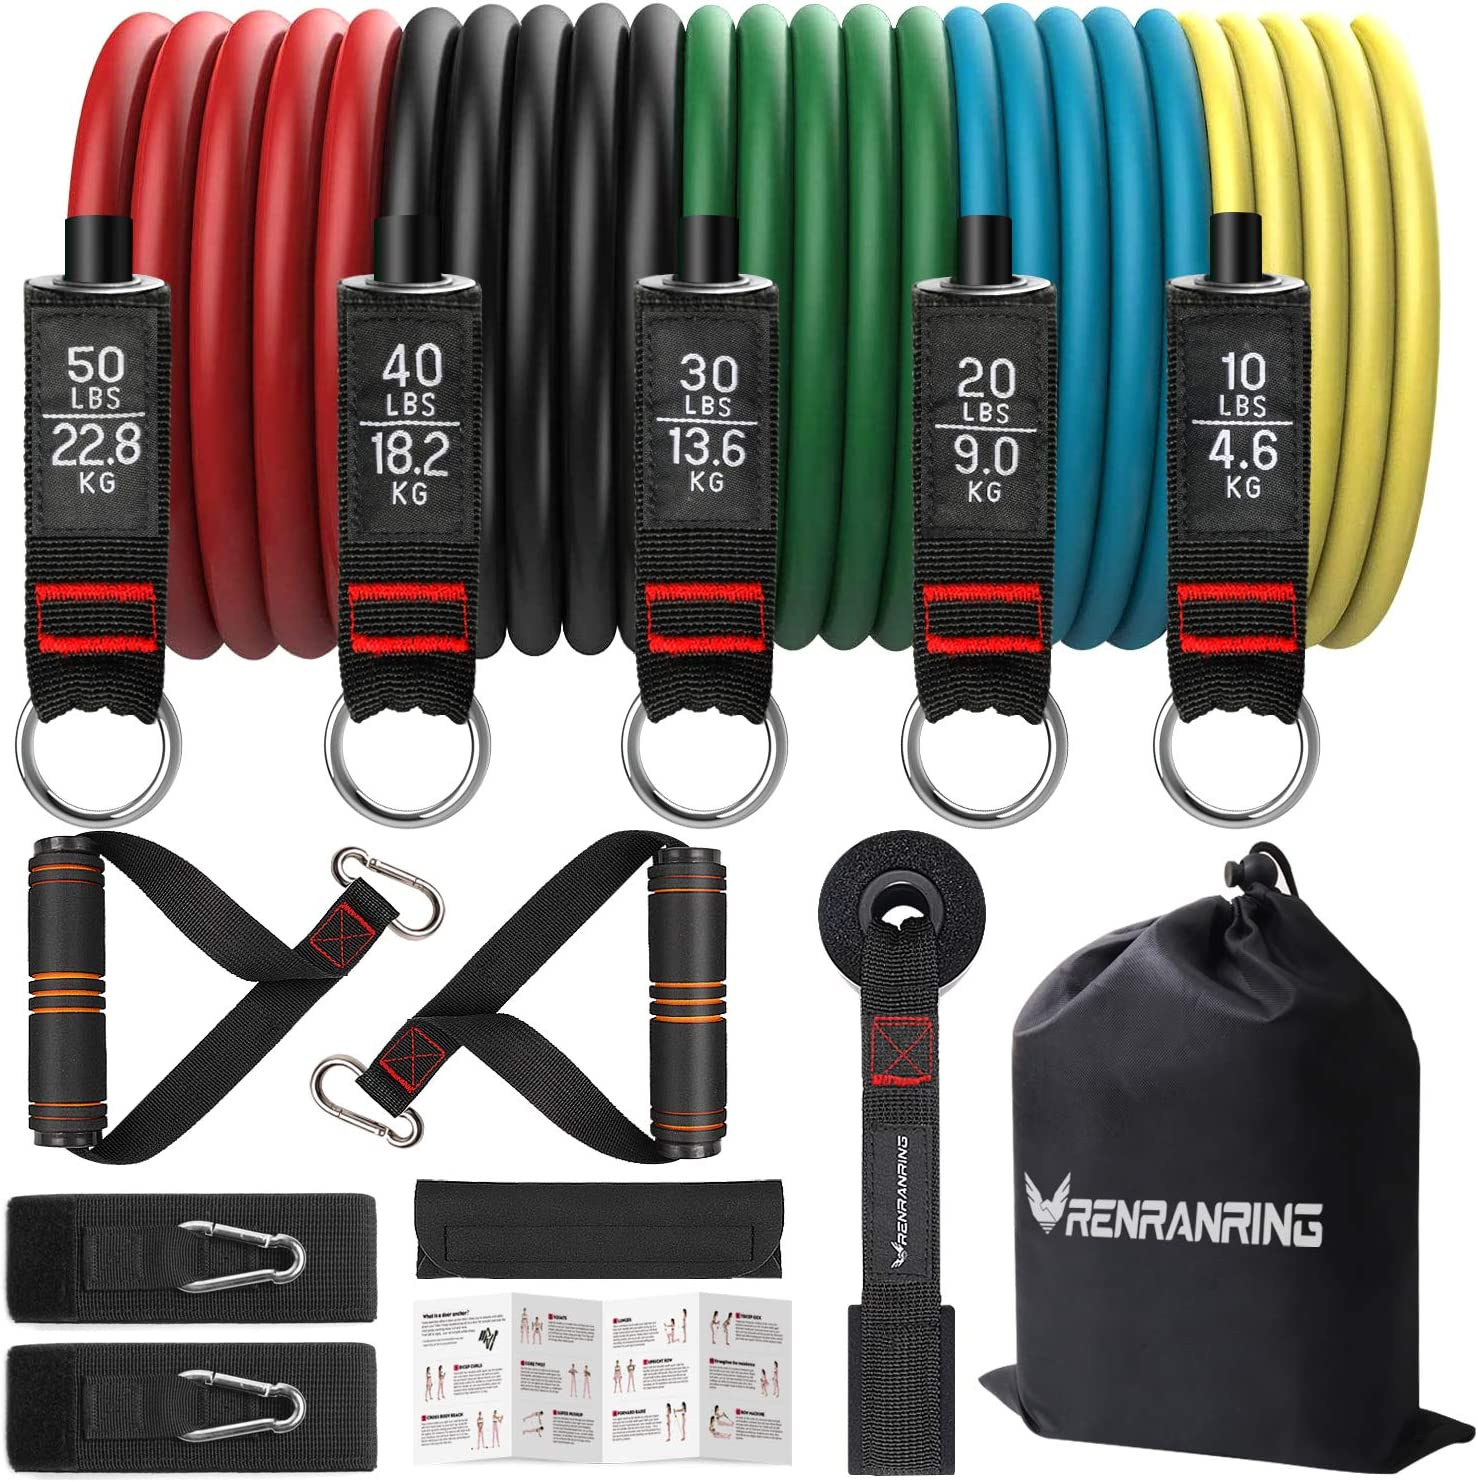 Resistance Bands Set,Exercise Bands with Stackable Workout Bands, Door Anchor Attachment, Handles, Legs Ankle Straps, Carry Bag, Gym Equipment for Home (Set of 13) (Black)